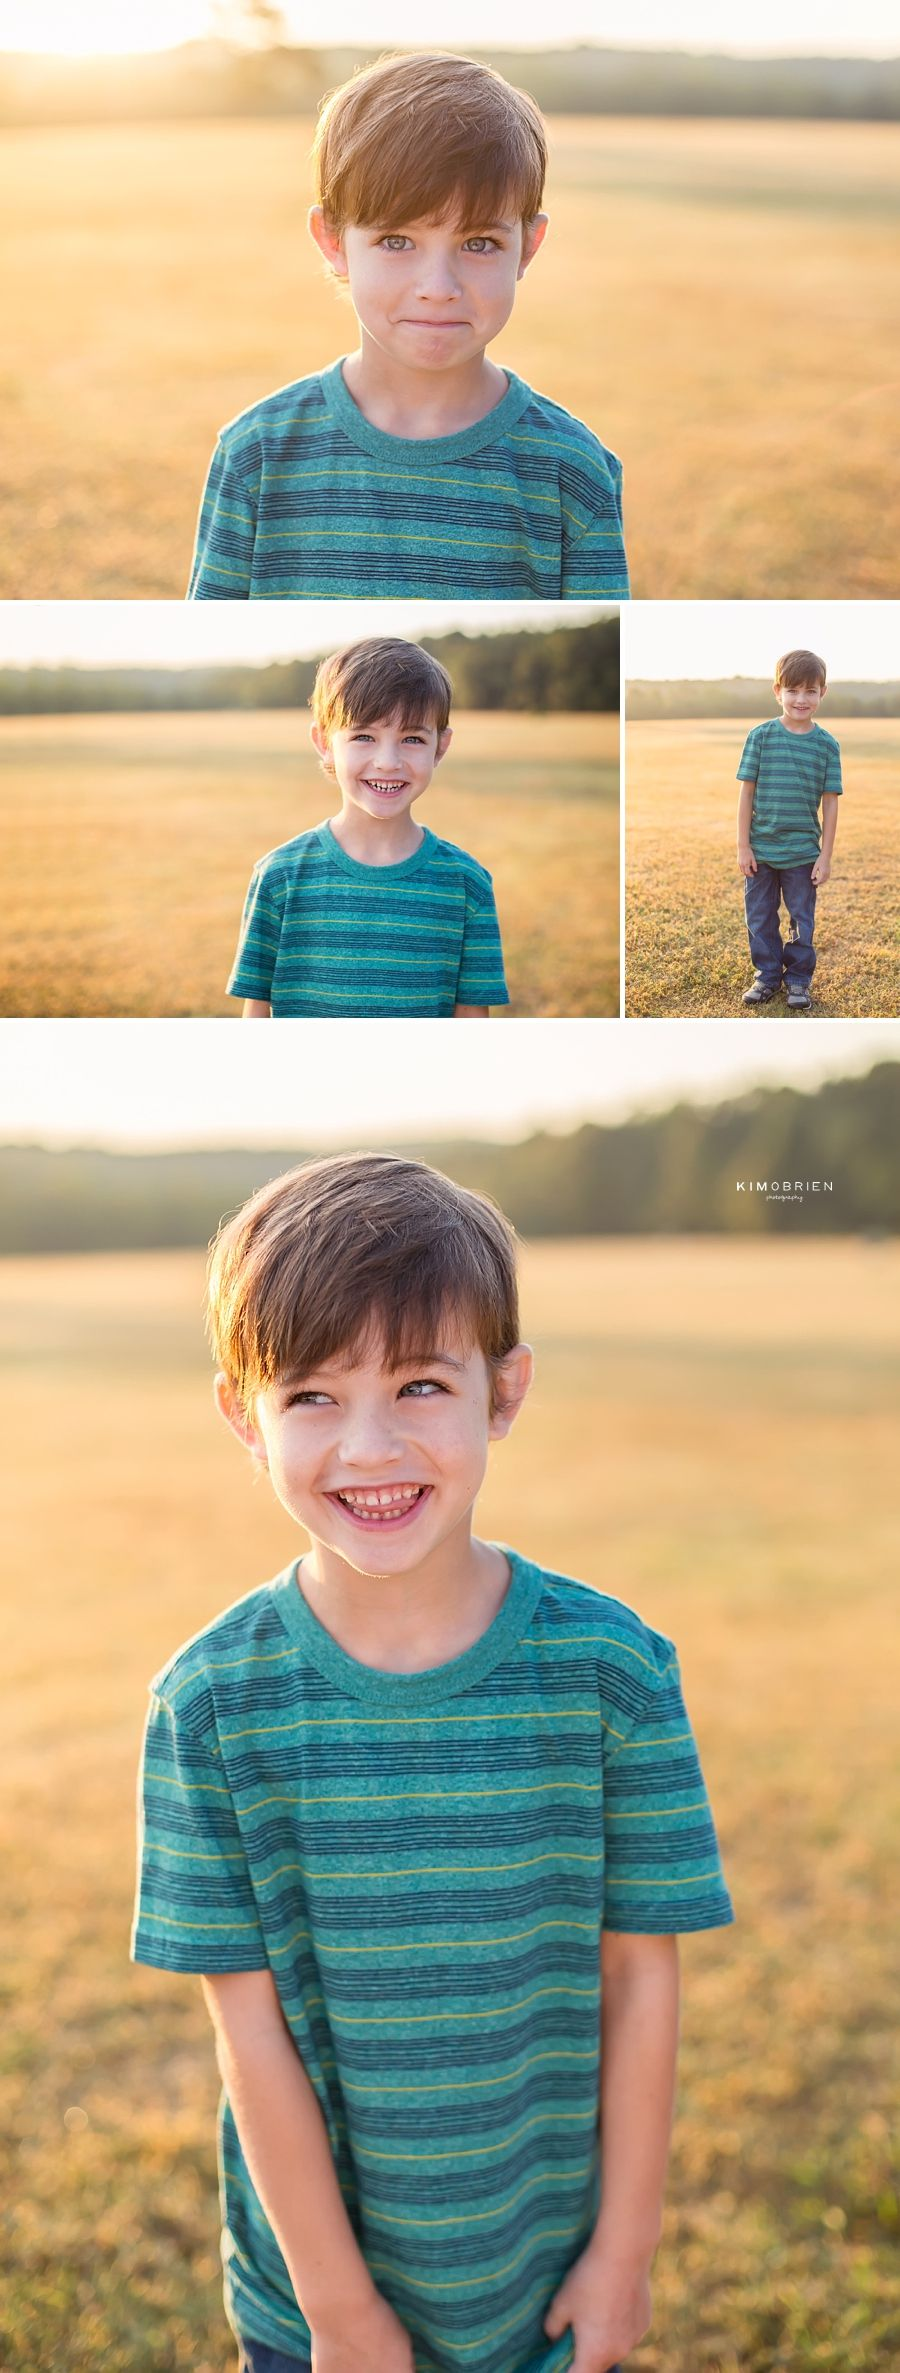 Fine Art Portrait Photography. Such A Cute Six Year Old